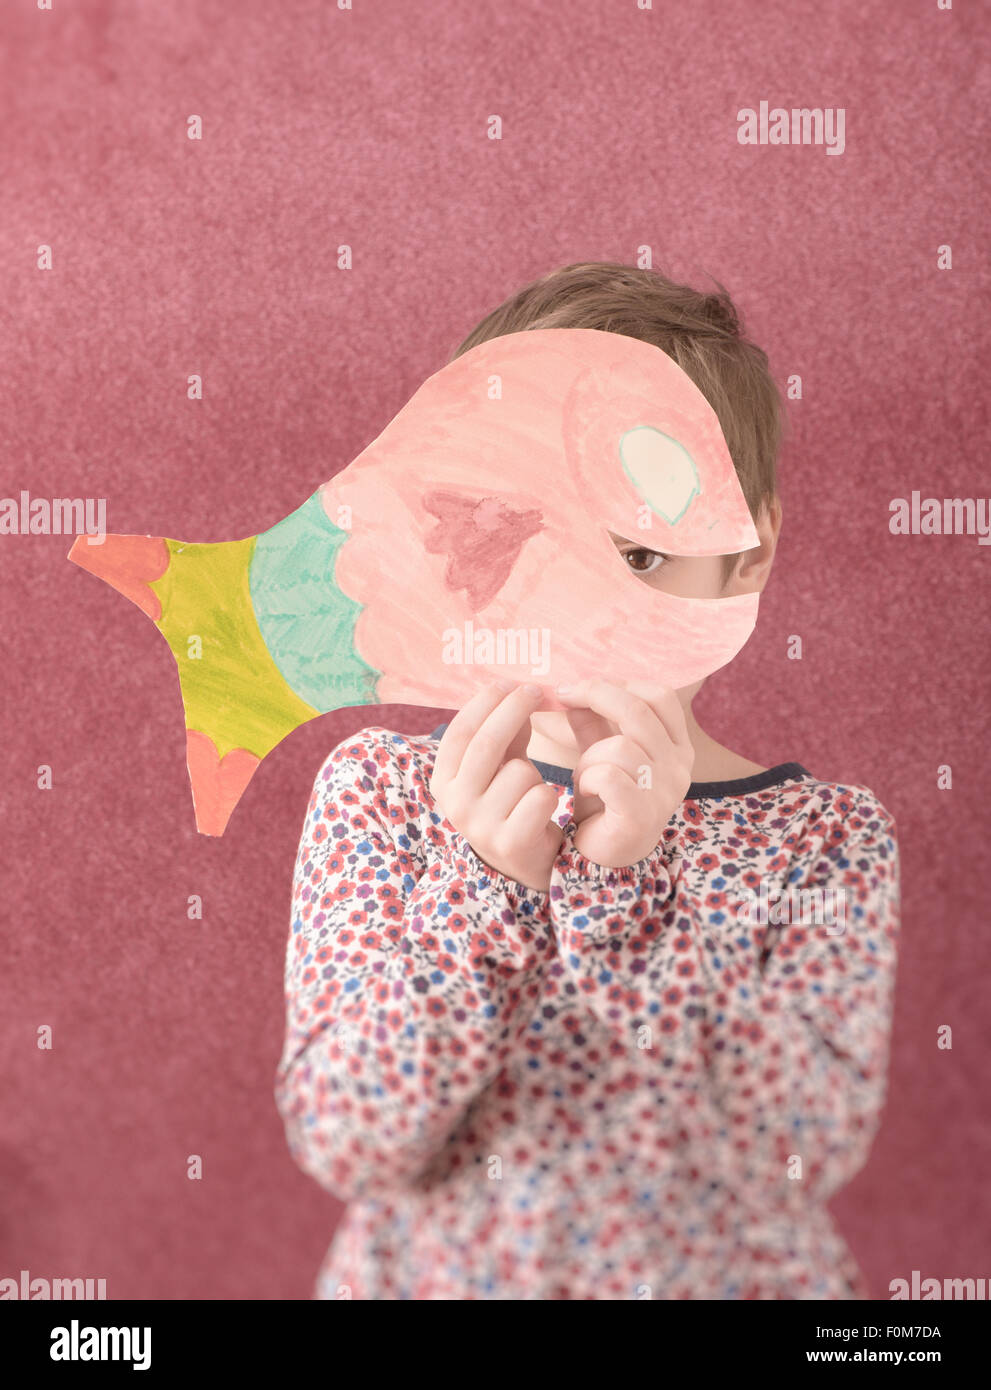 Portrait of little girl in dress holding a cut out drawing of a fish in front of her face. She is shy and hiding - Stock Image